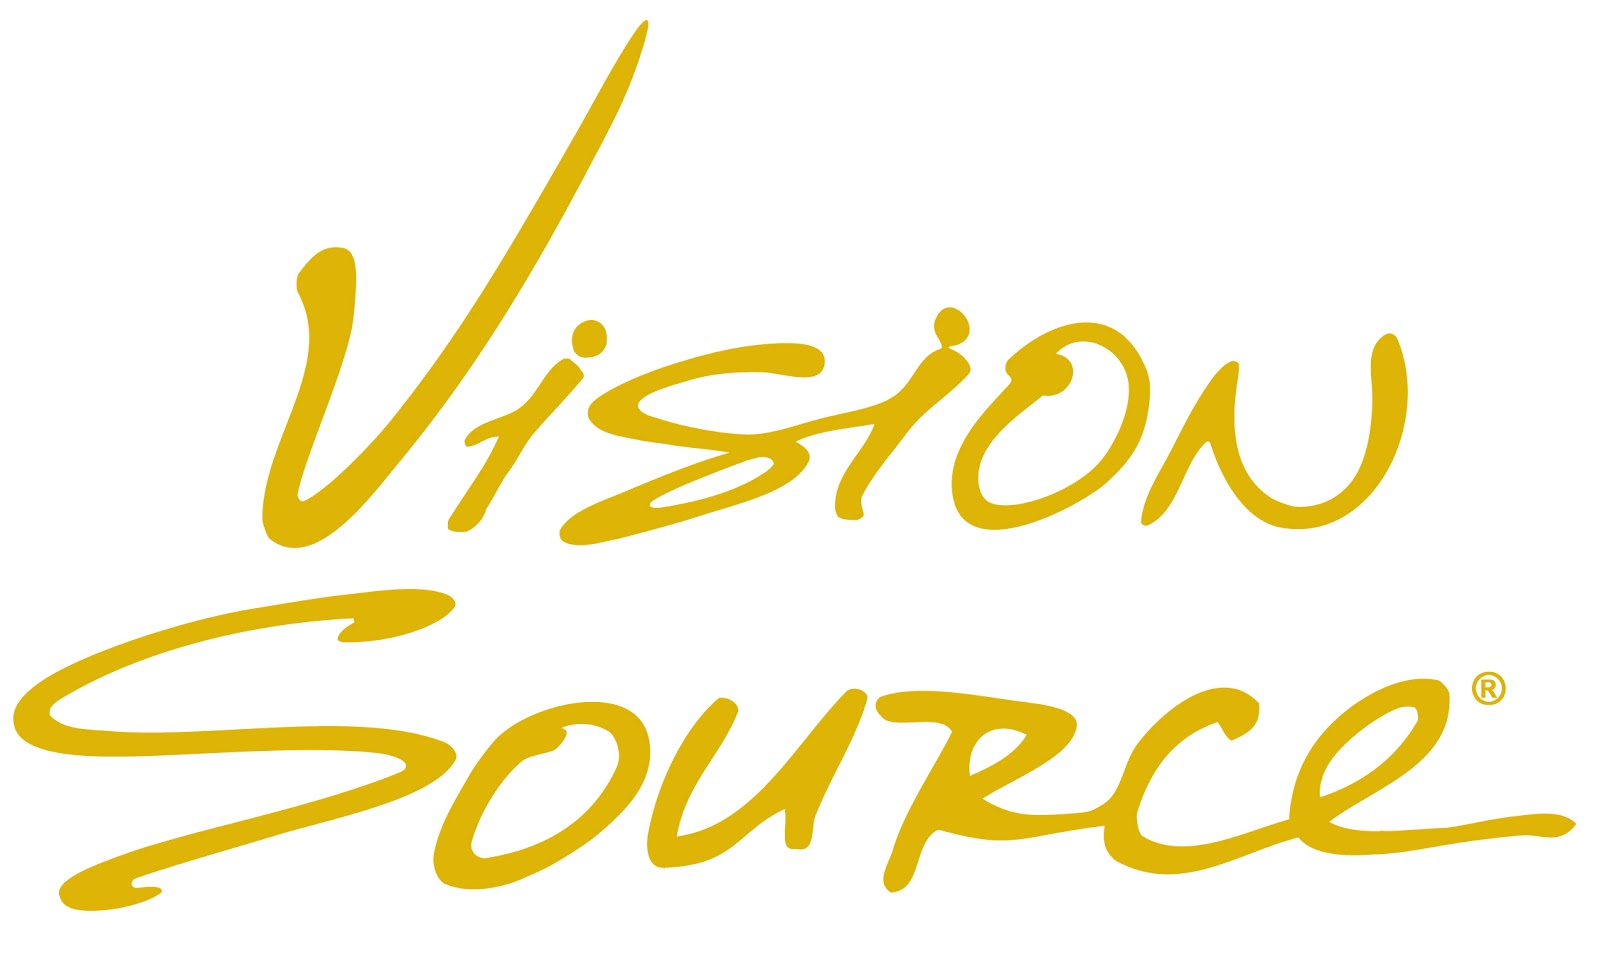 ... source before or you may not have vision source is a buying group we: clarityeyecare.blogspot.com